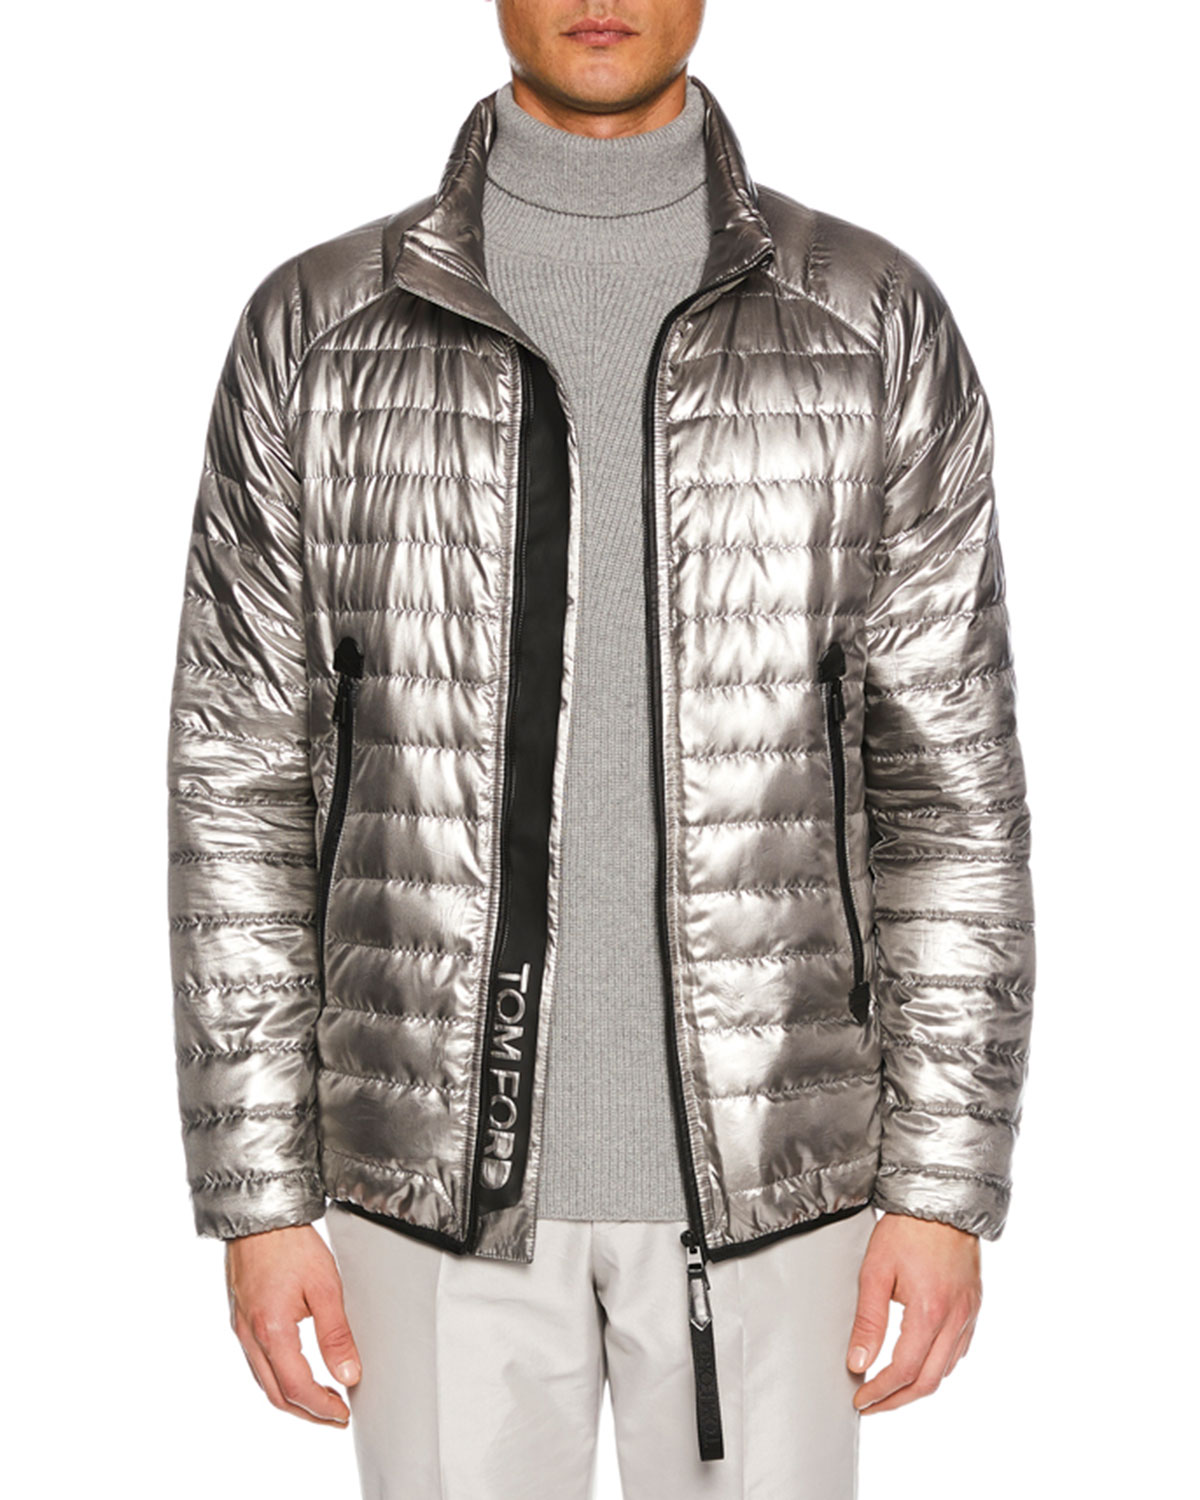 1457ffc8af6 TOM FORD Men s Metallic Puffer Jacket